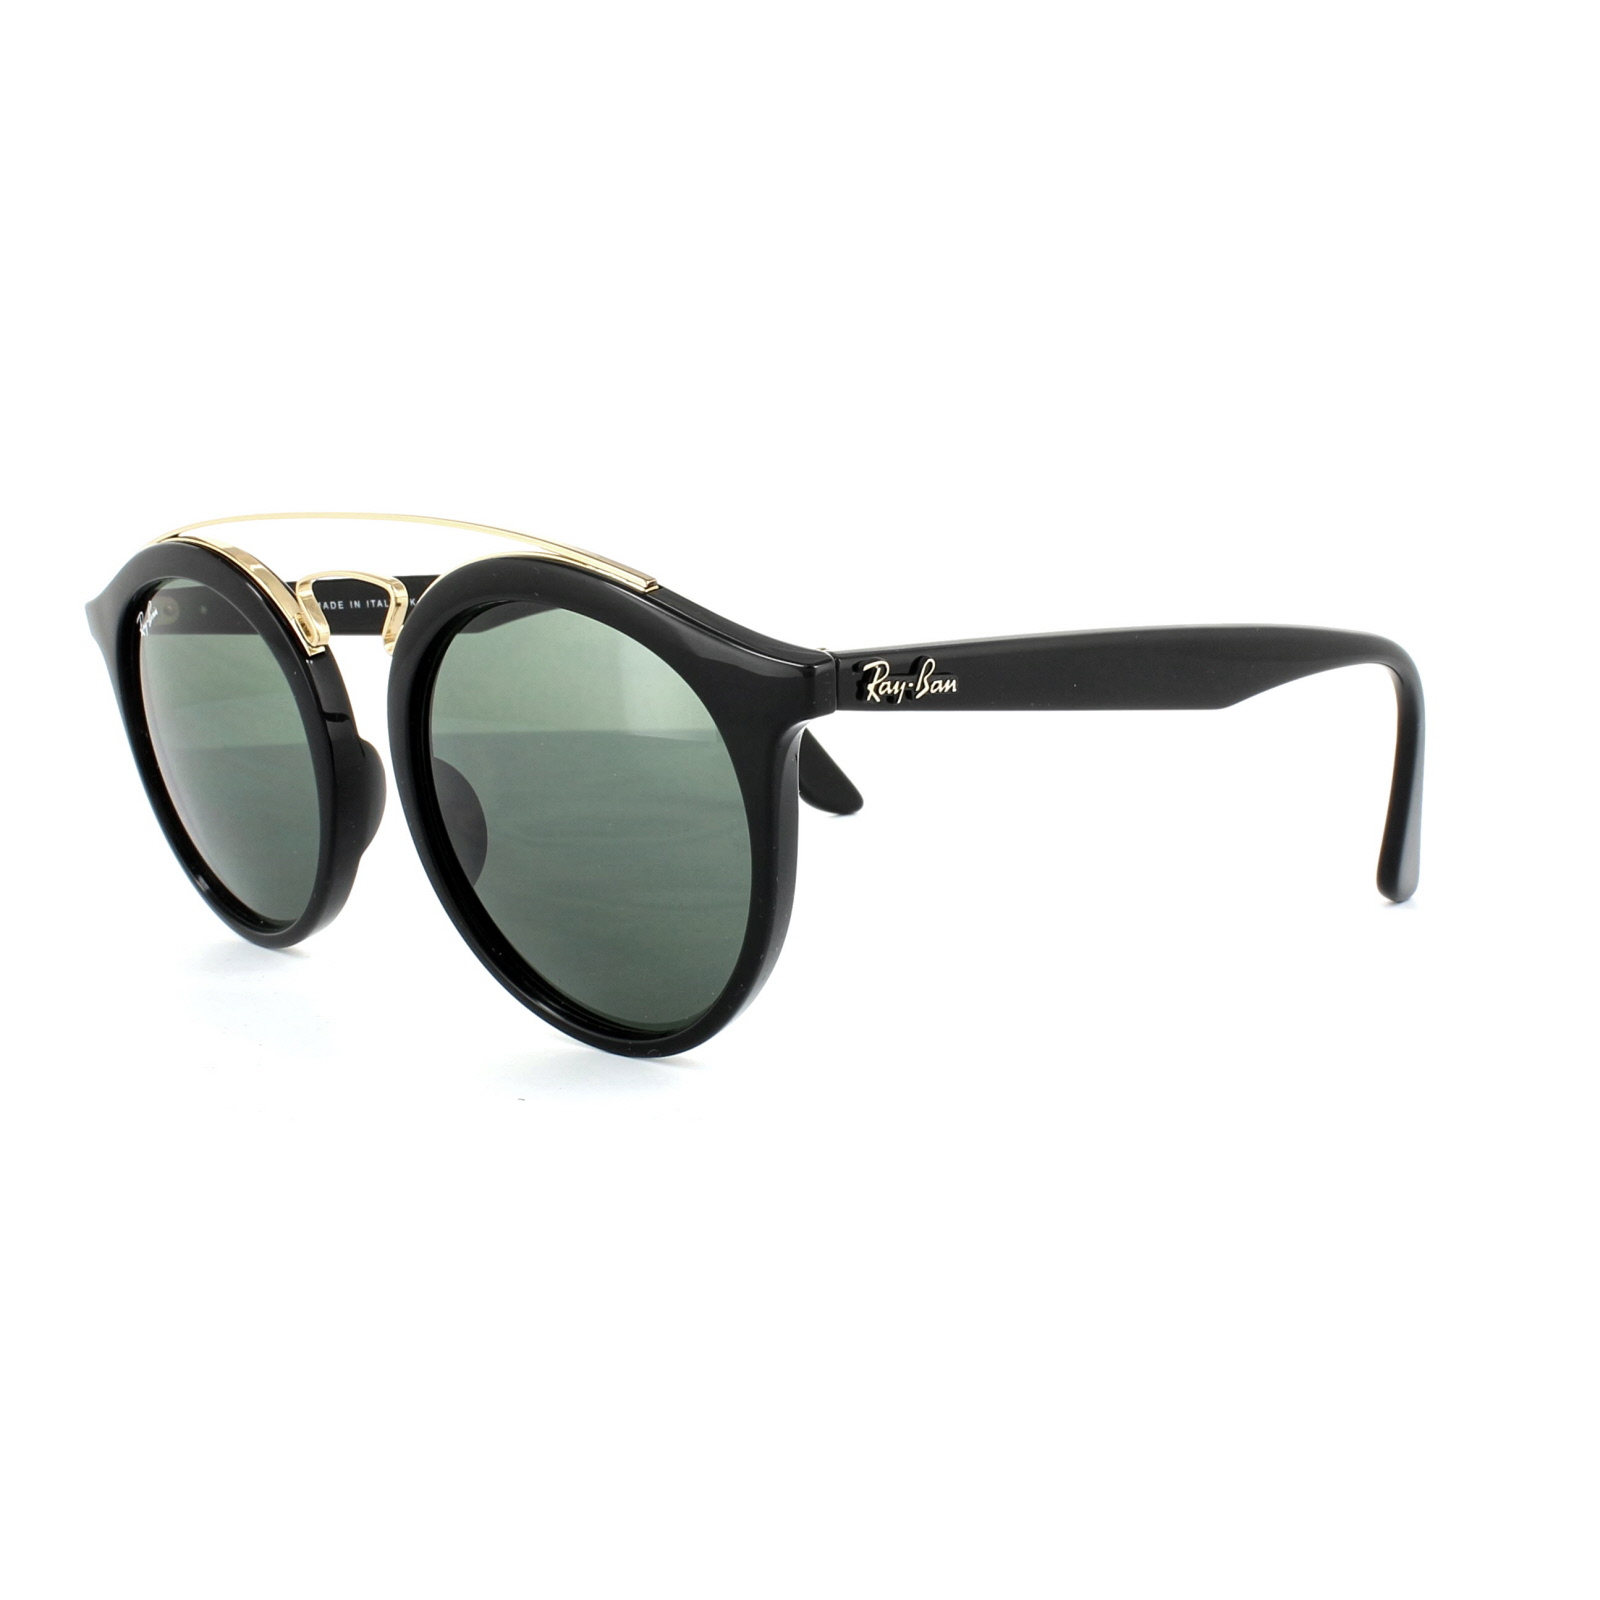 f5609eb943 Sentinel Thumbnail 1. Sentinel Ray-Ban Sunglasses Gatsby 4256 601 71 Black  Green Large 49mm